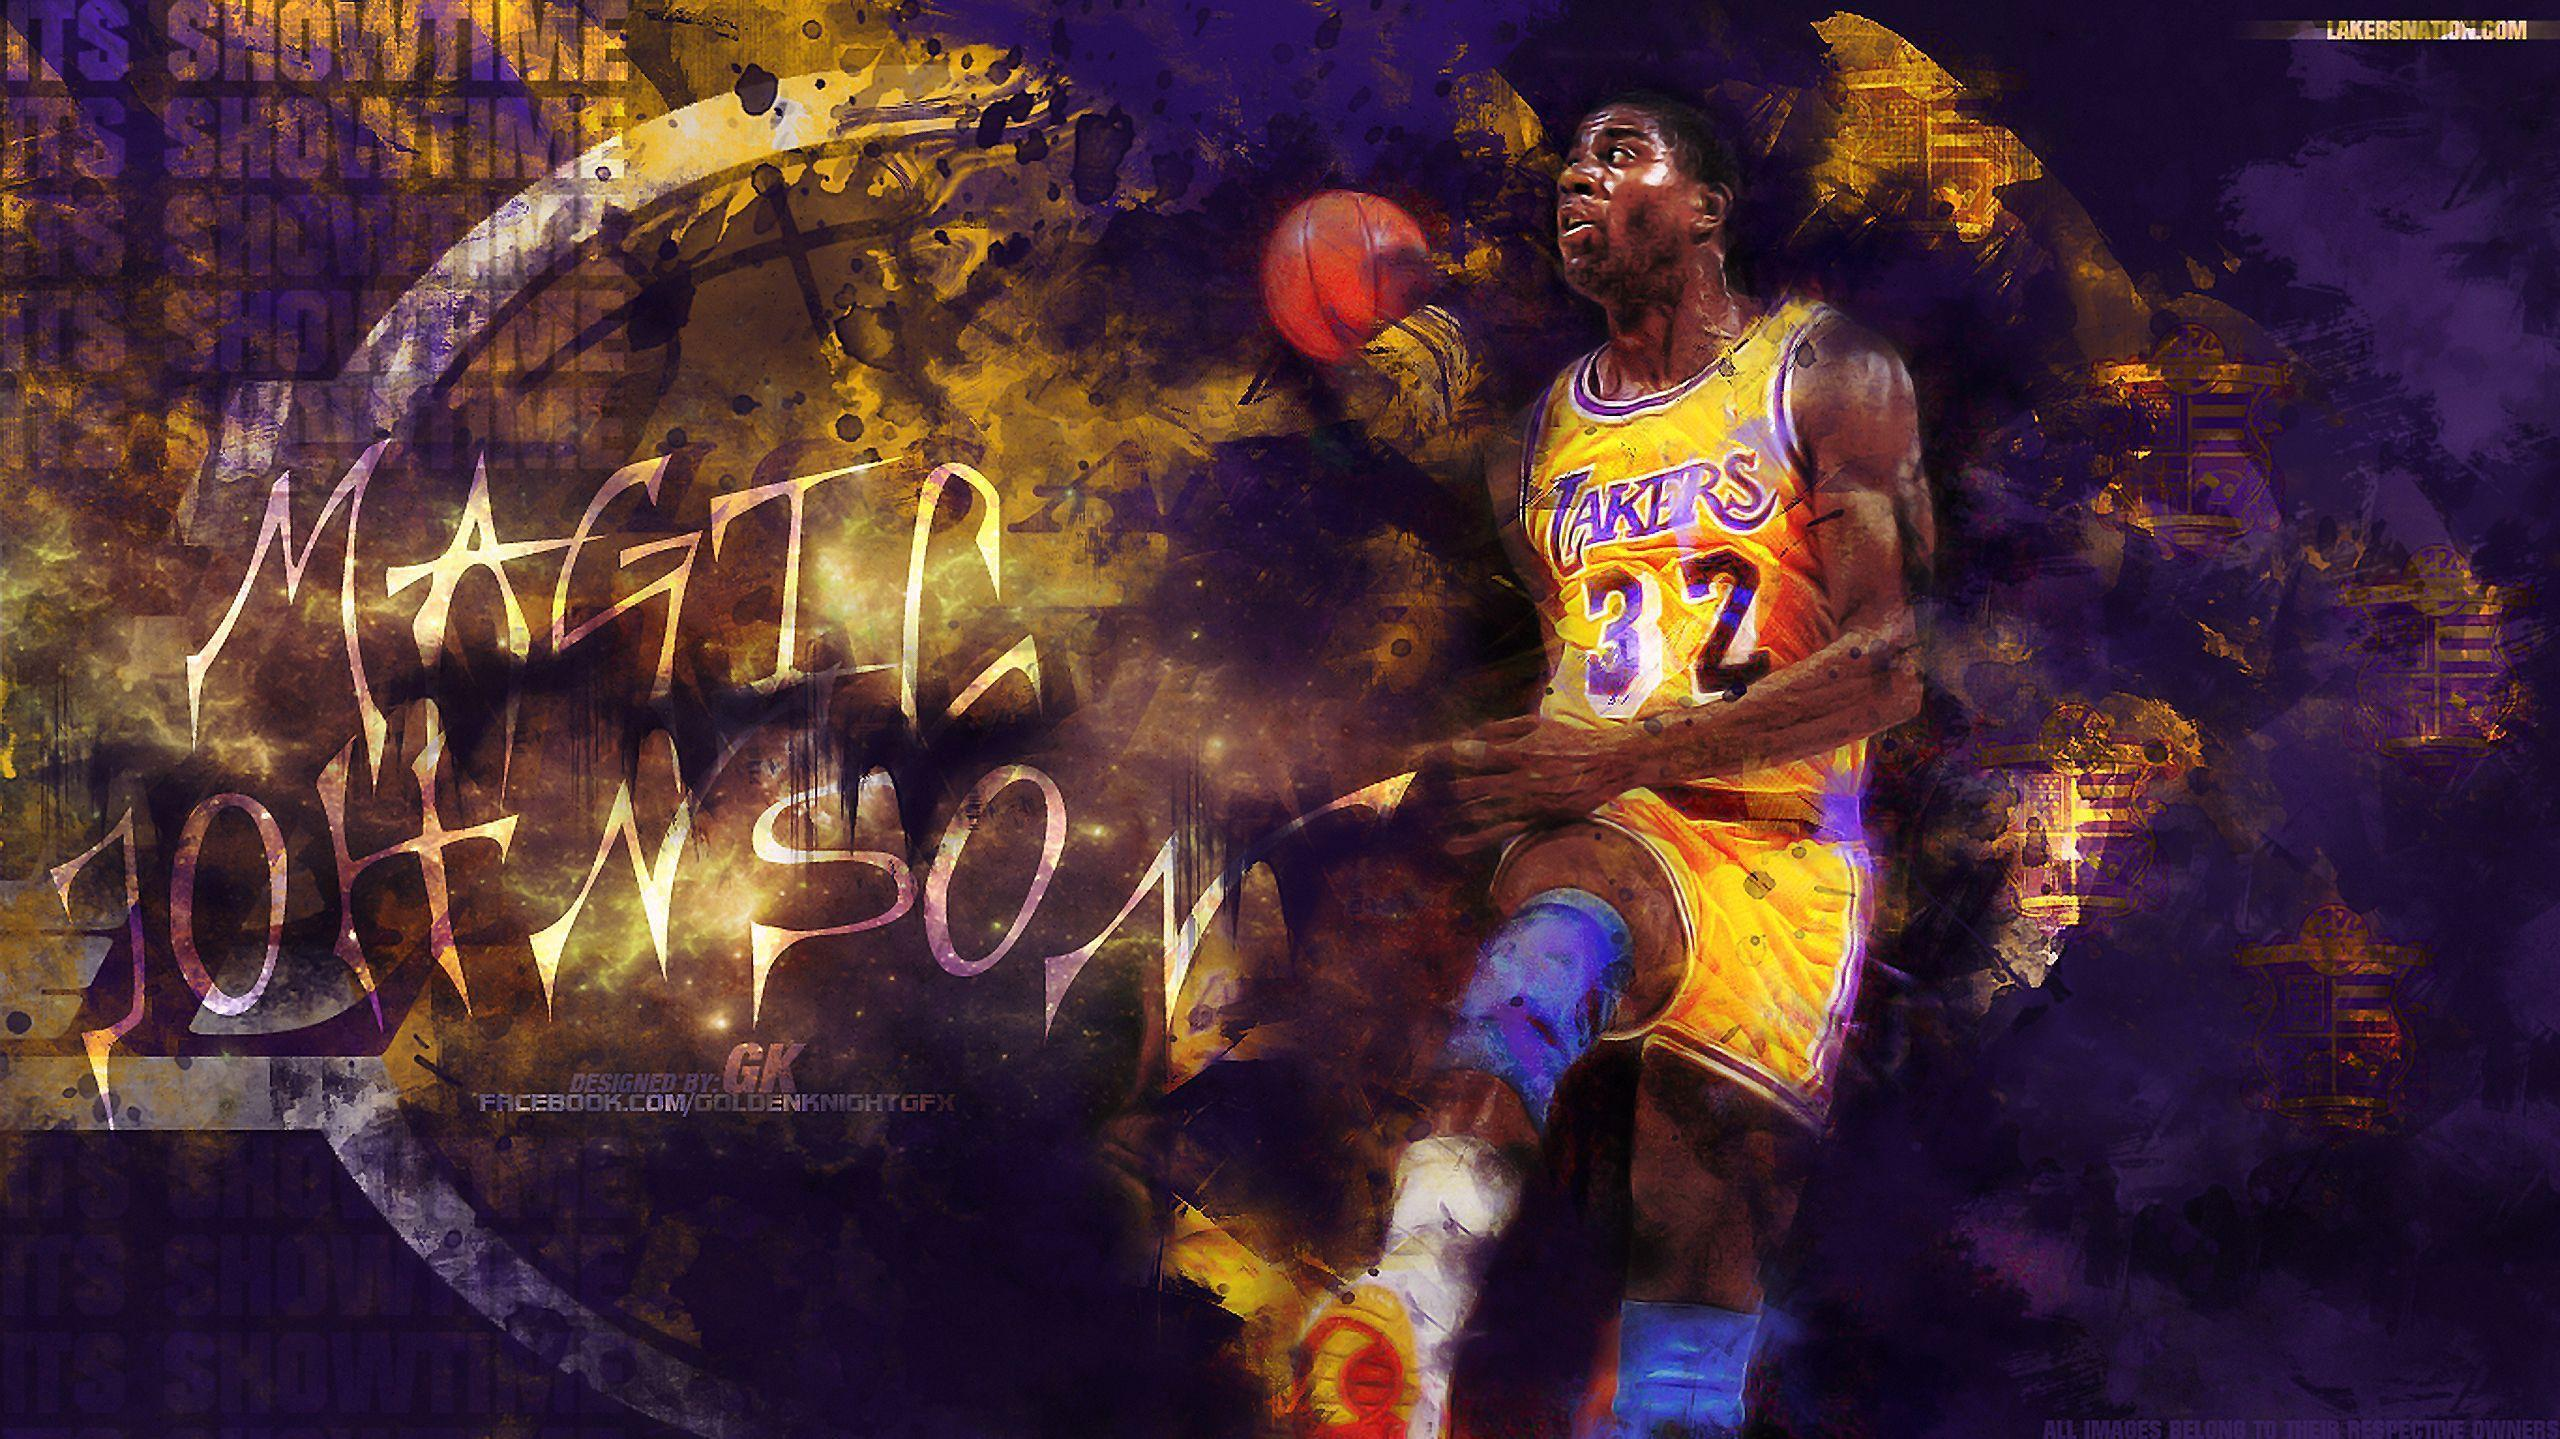 Magic Johnson Wallpapers Related Keywords & Suggestions